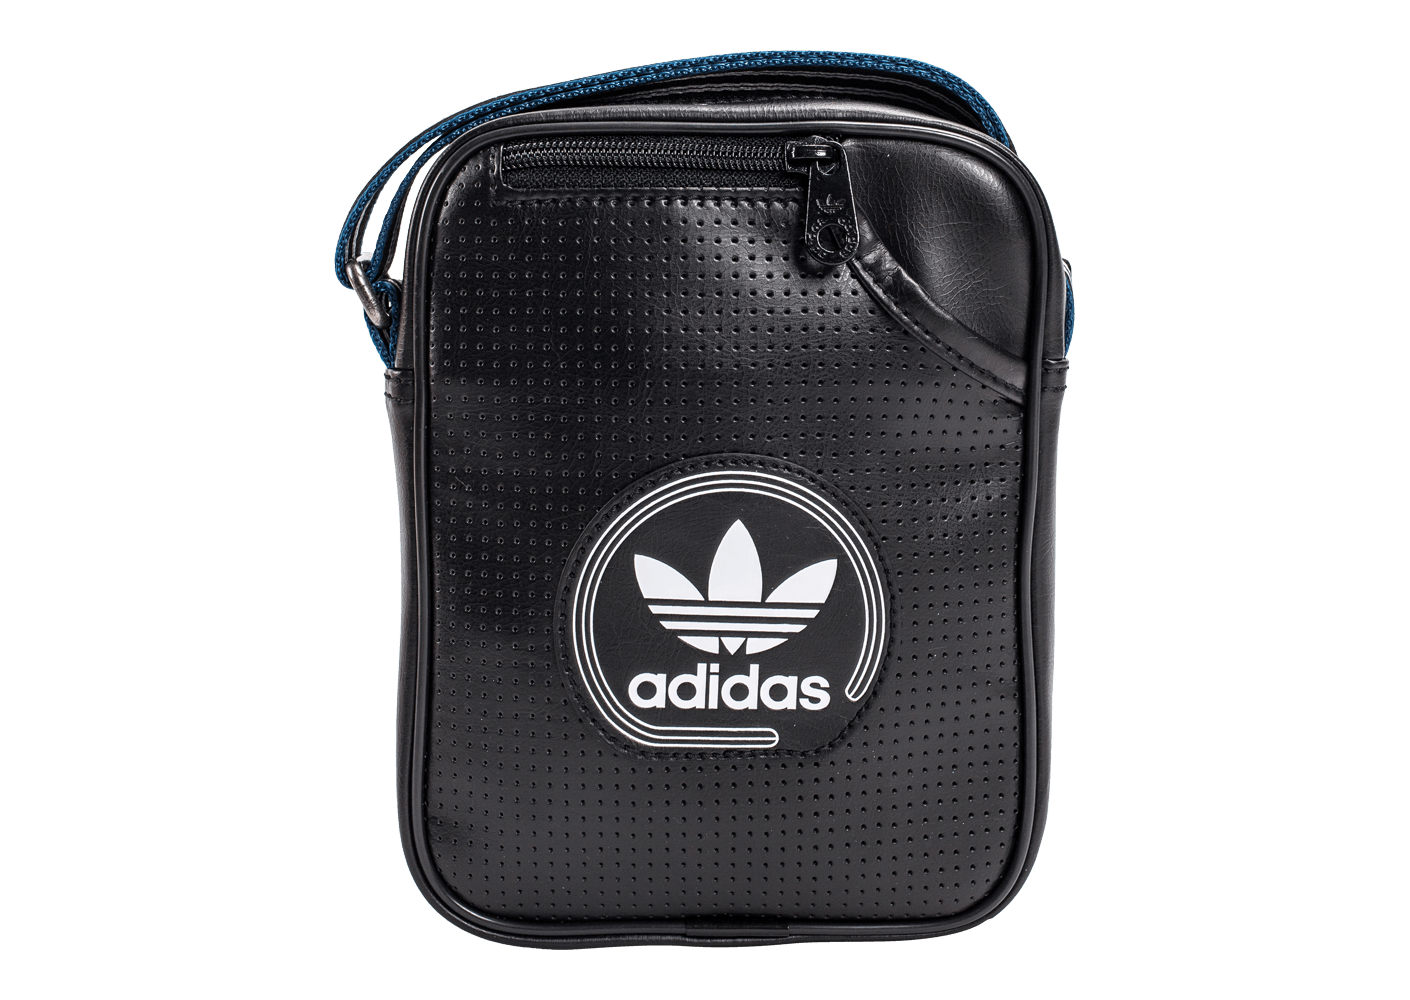 Adidas Perforated Bag Sacoche Chausport Mini Noire TF13KJlc